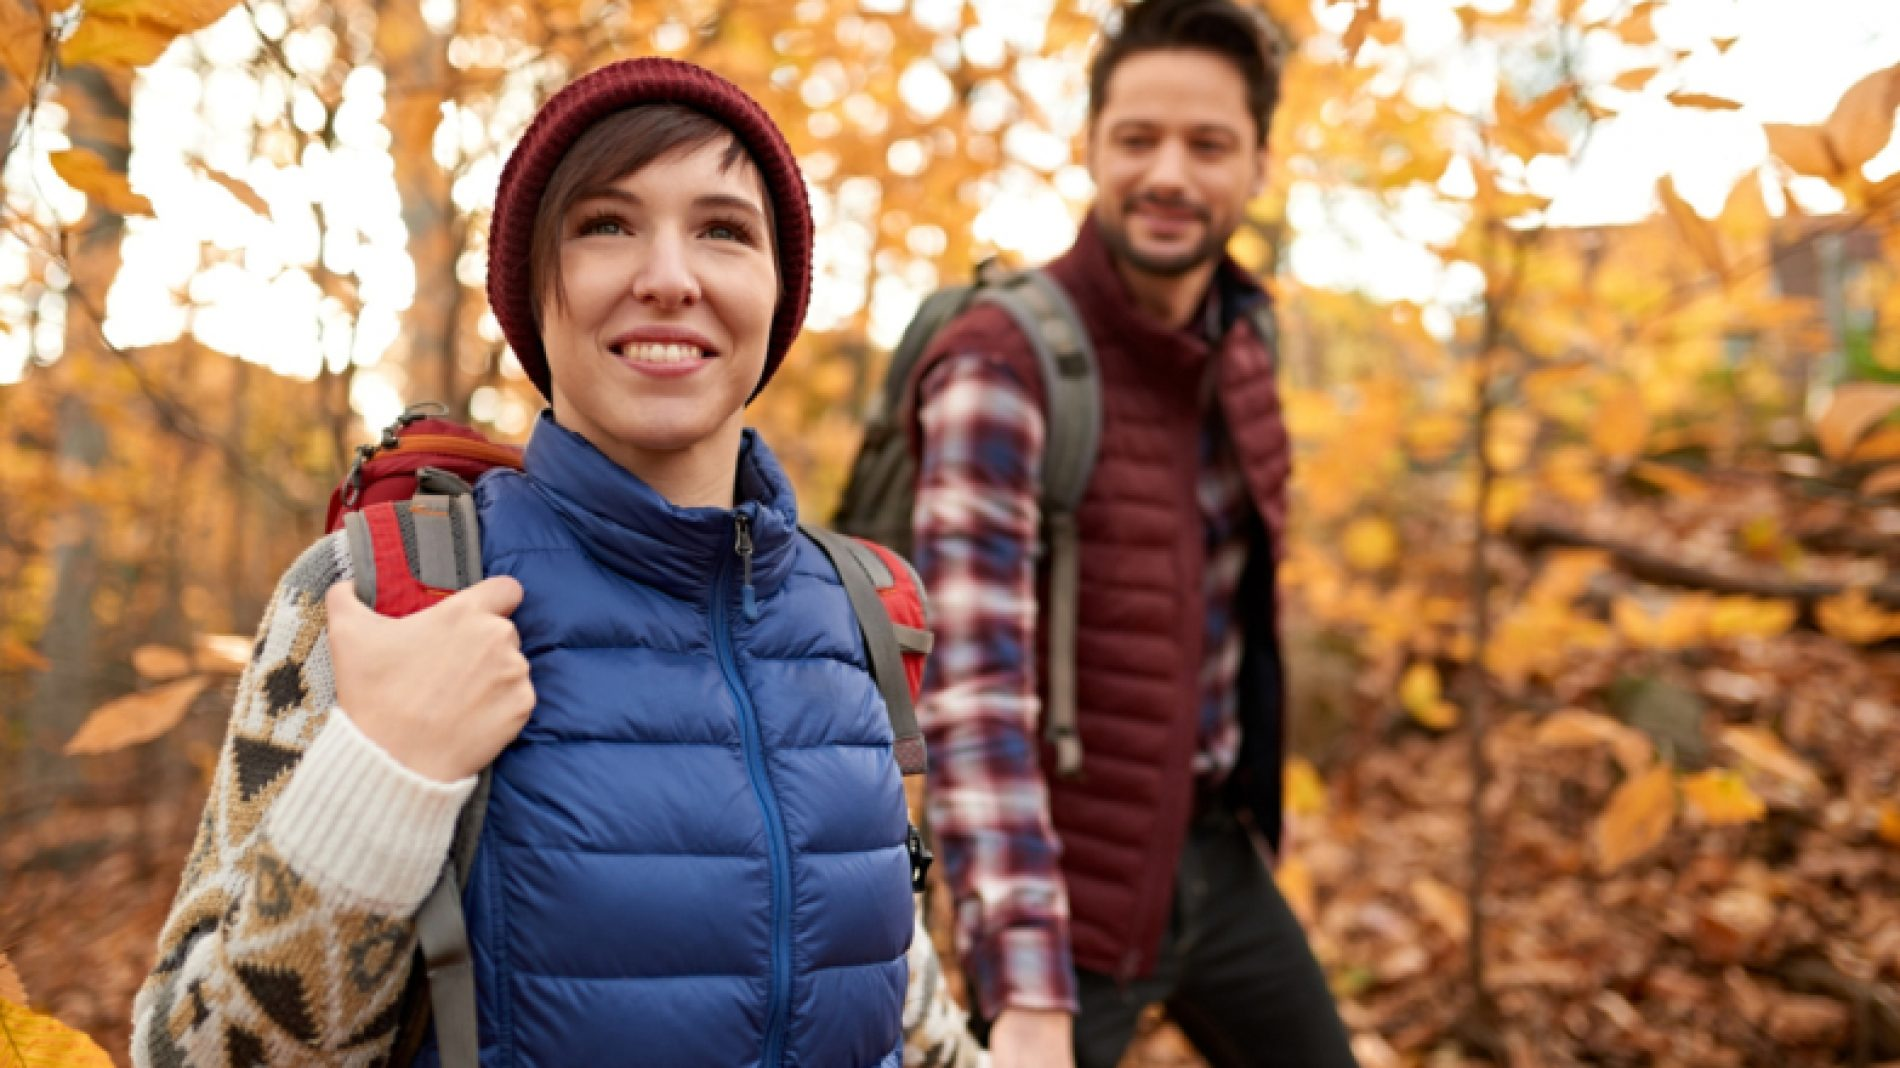 Two-friends-hiking-in-a-park-EVAluE